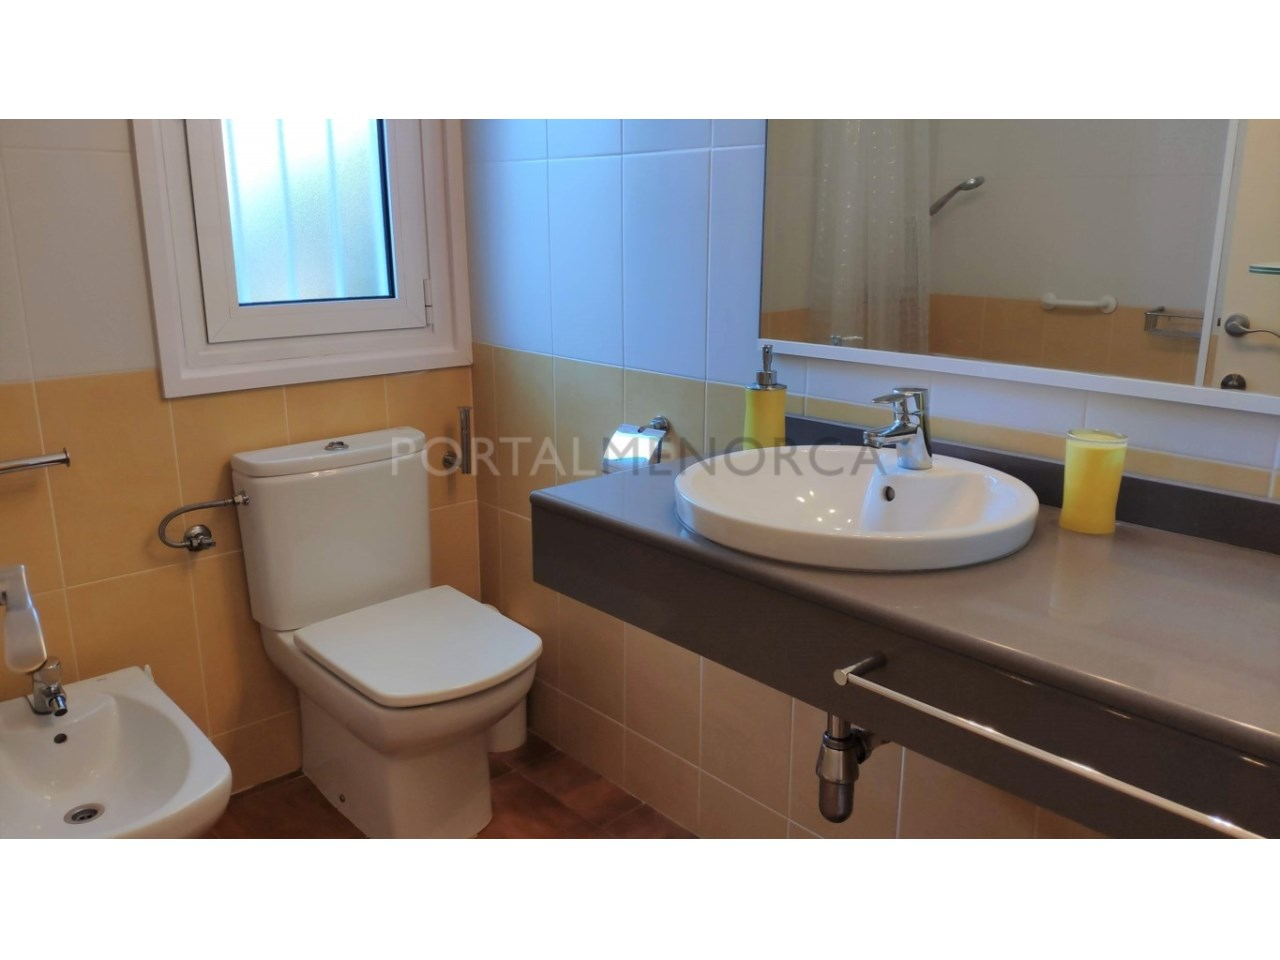 Townhouse for sale in Calan Blanes near the beach- Bathroom